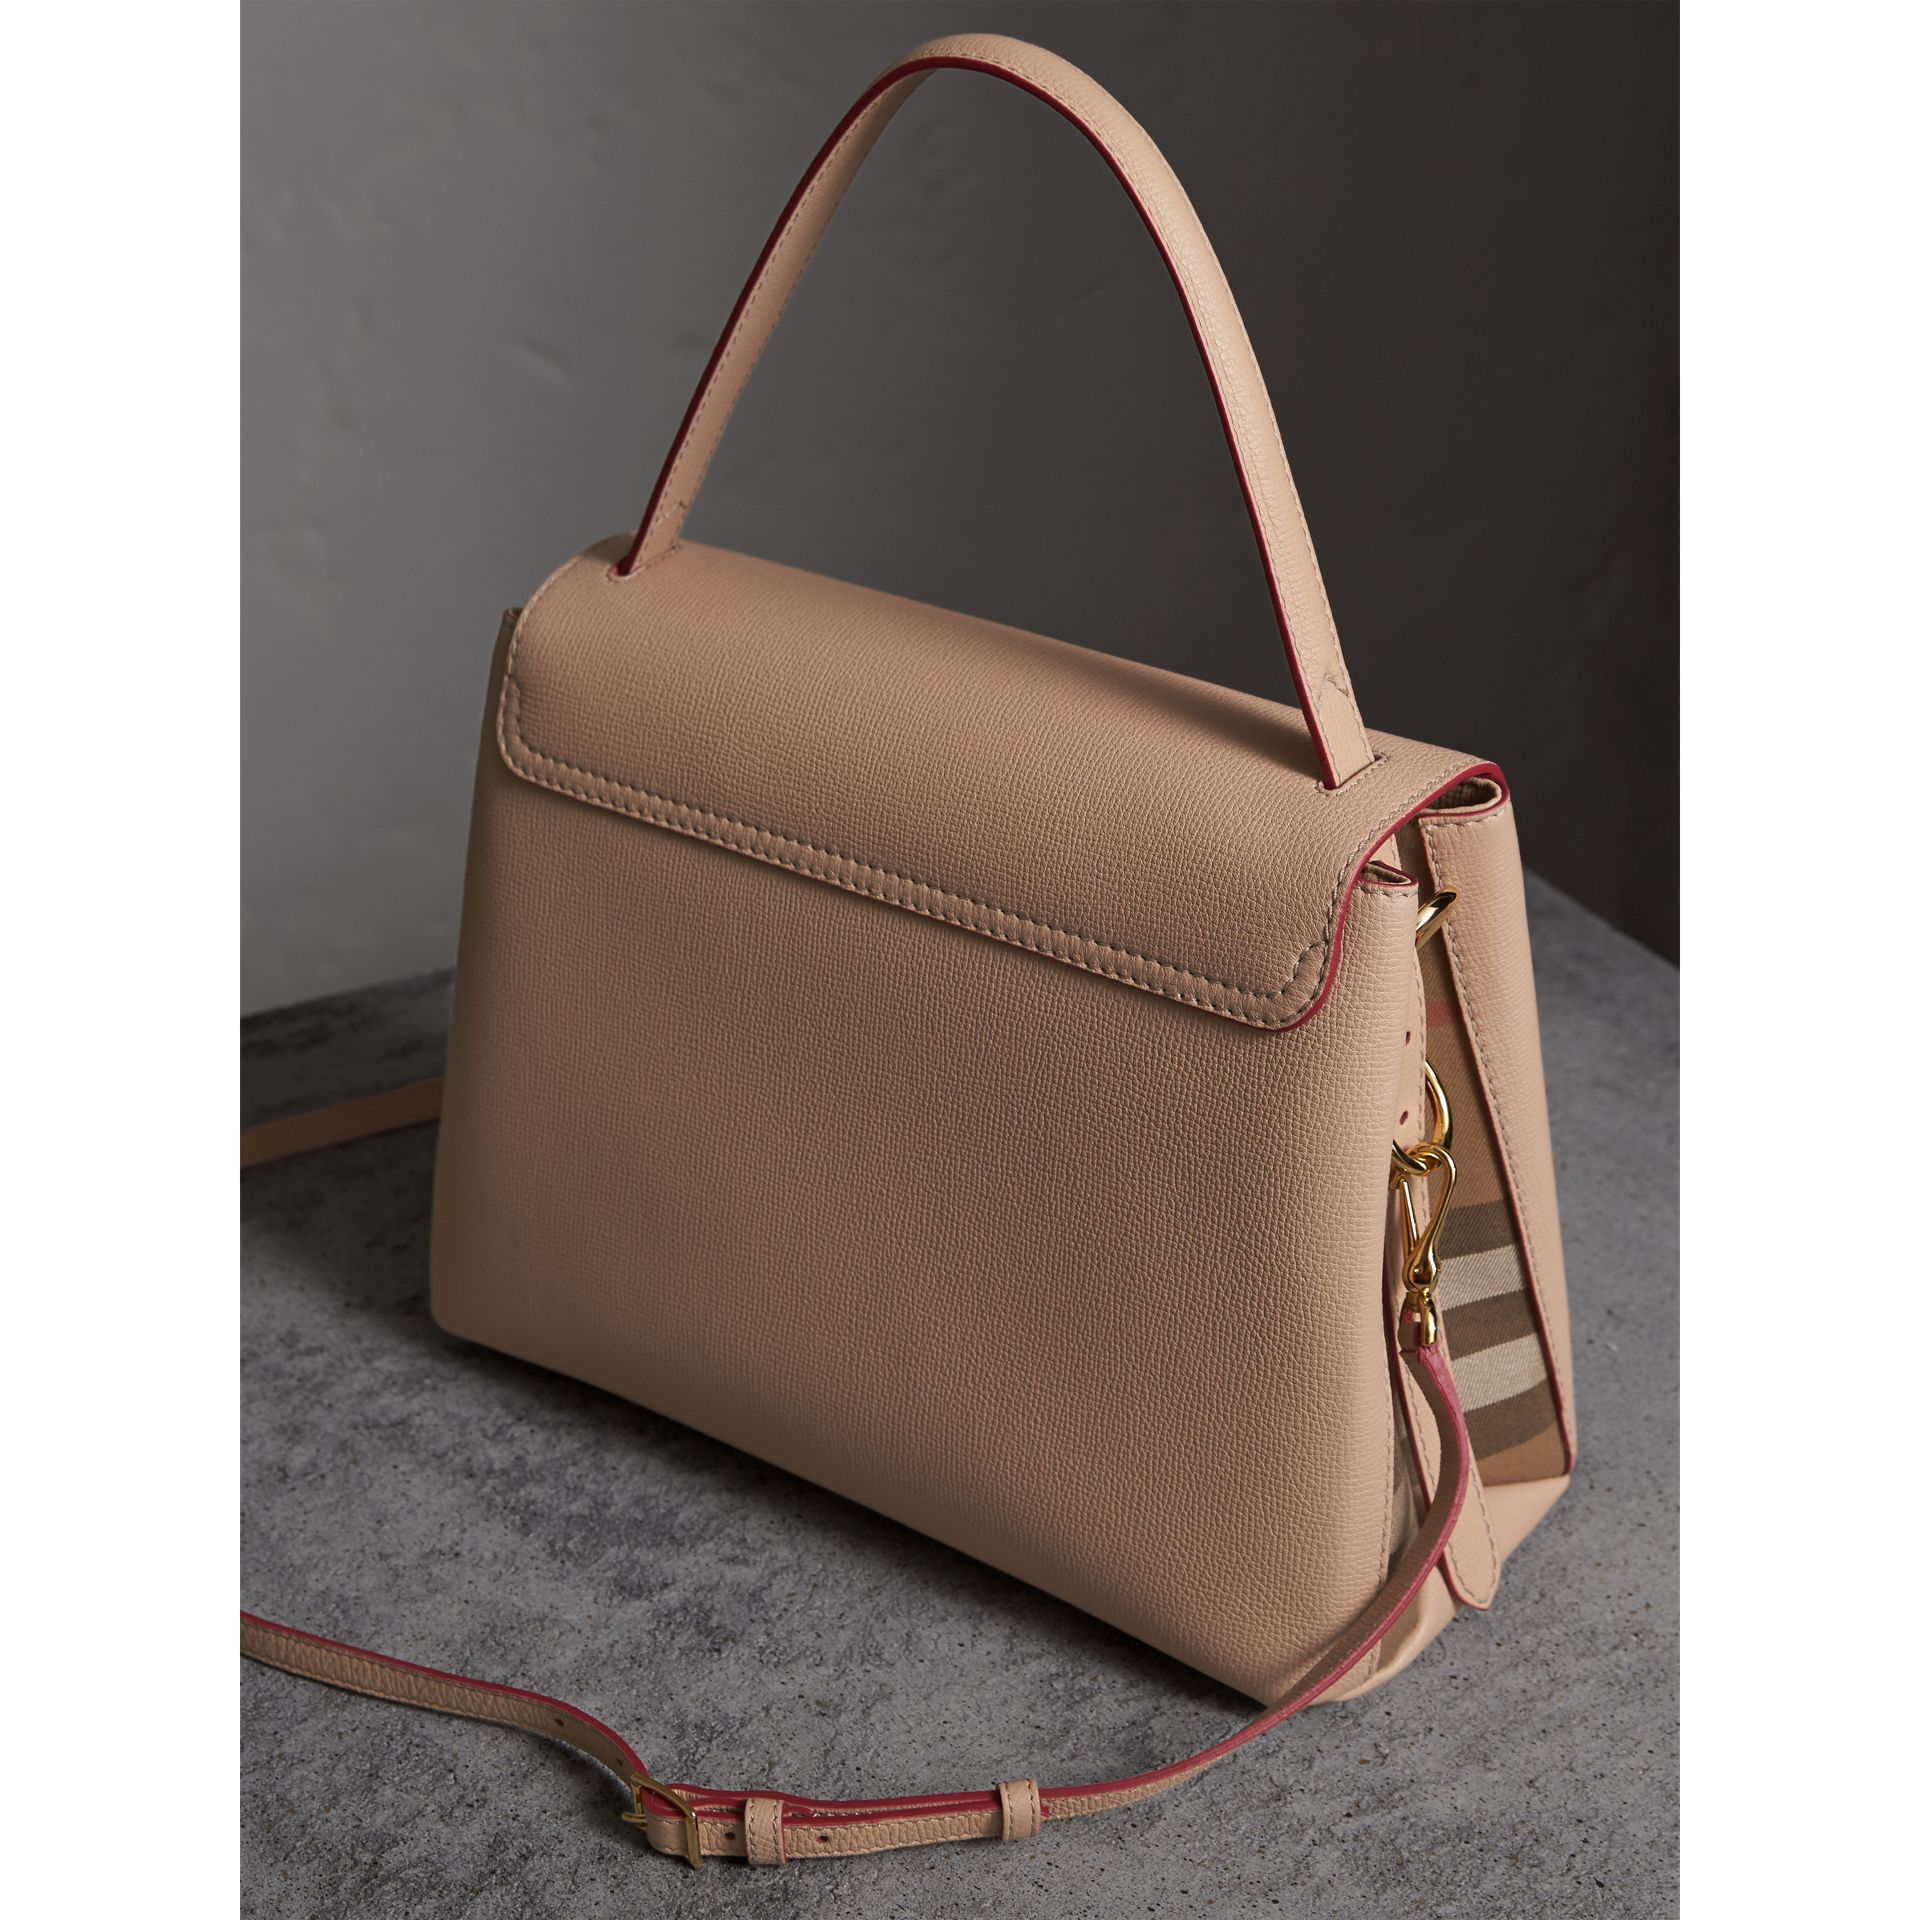 Medium Grainy Leather and House Check Tote Bag in Pale Apricot - Women | Burberry Australia - gallery image 4